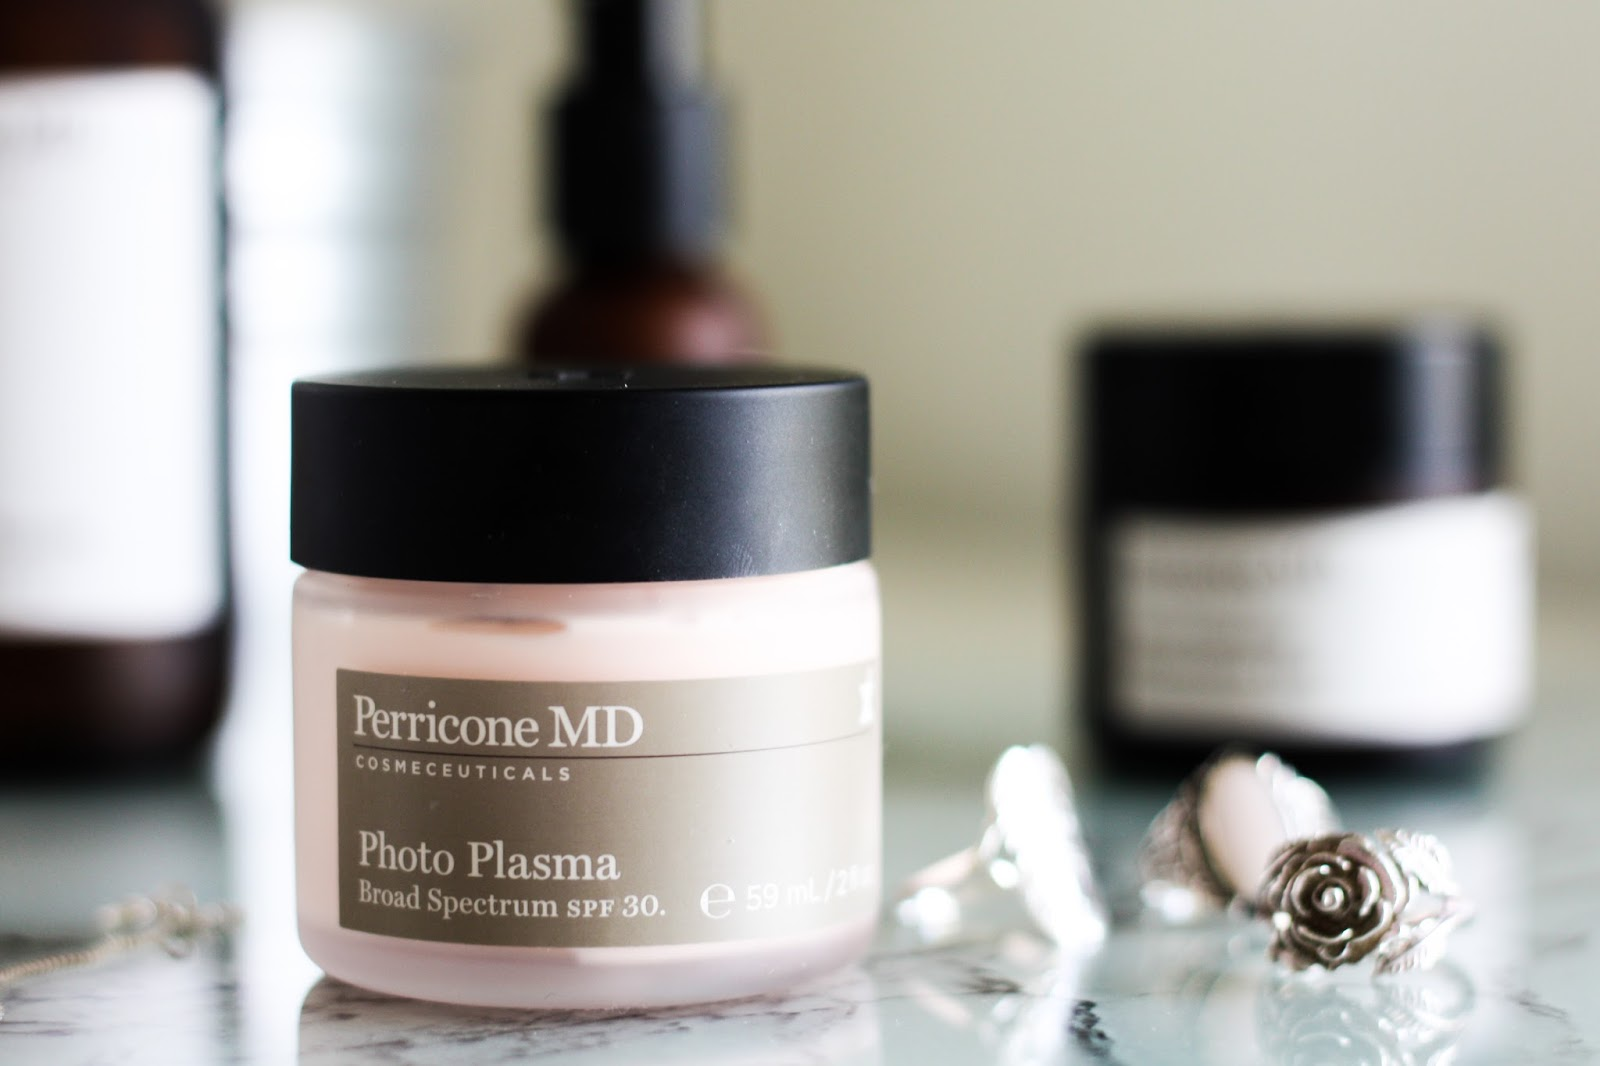 Perricone MD Photo Plasma review